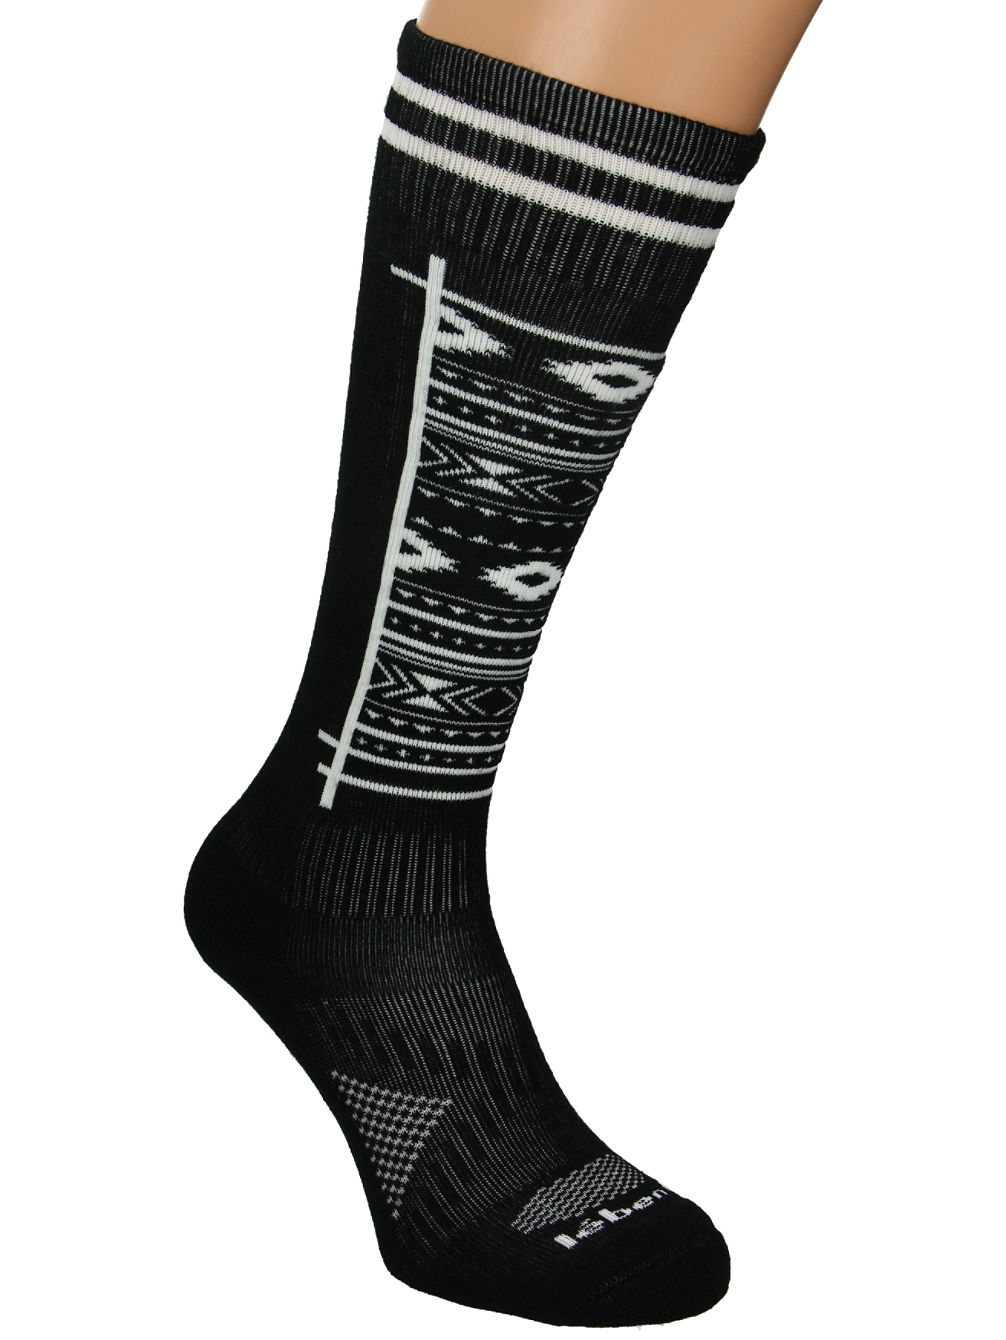 le-bent-definitive-light-aztec-socks